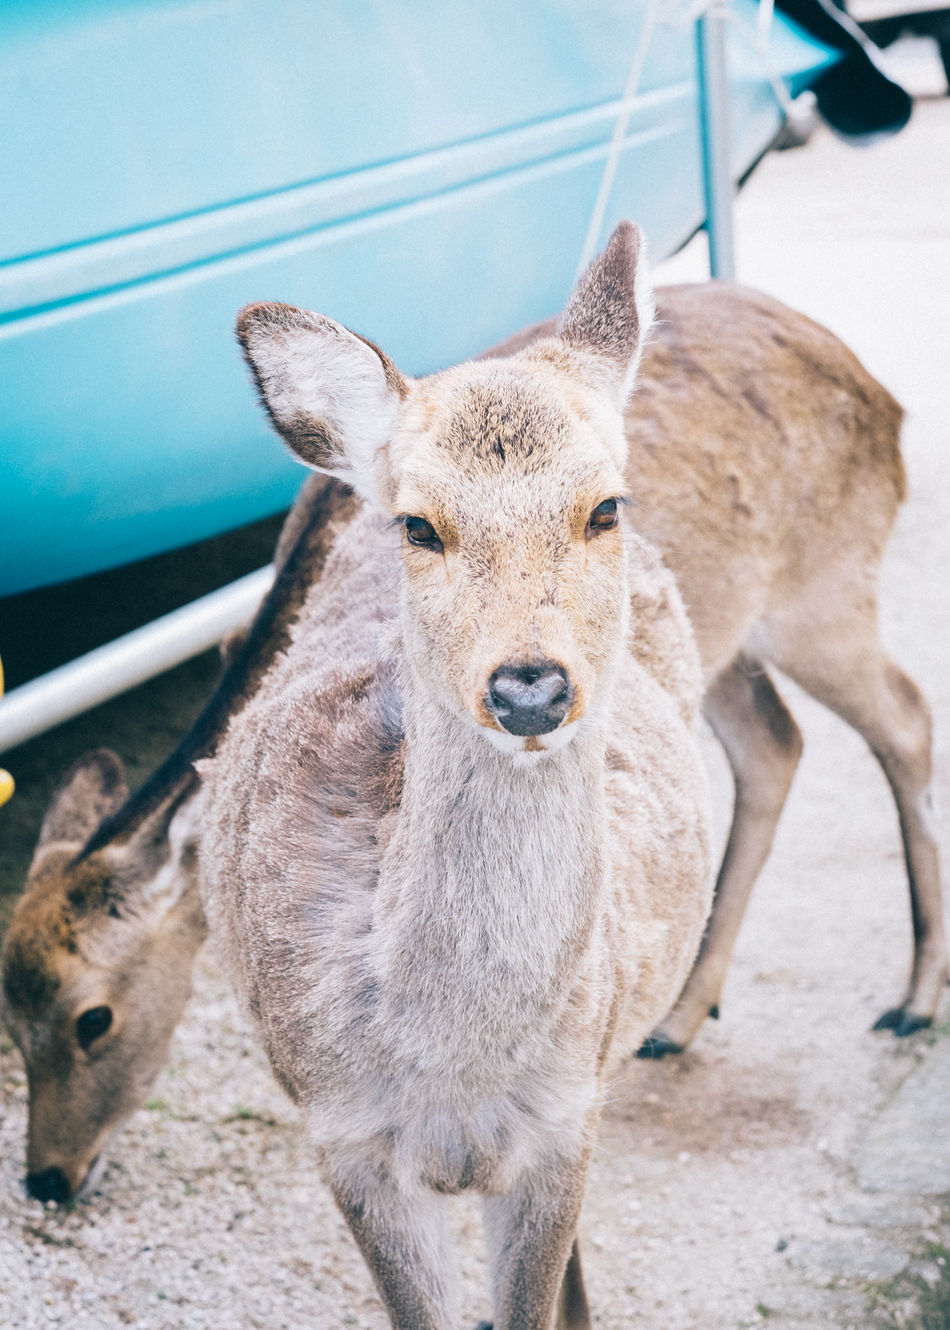 portrait Animal Themes Animals In The Wild Animals In The Wild Deer Domestic Animals Japan Scenery Looking At Camera Mammal Nature Nature_collection Naturelovers No People One Animal Outdoors Portrait Simplicity Wildlife